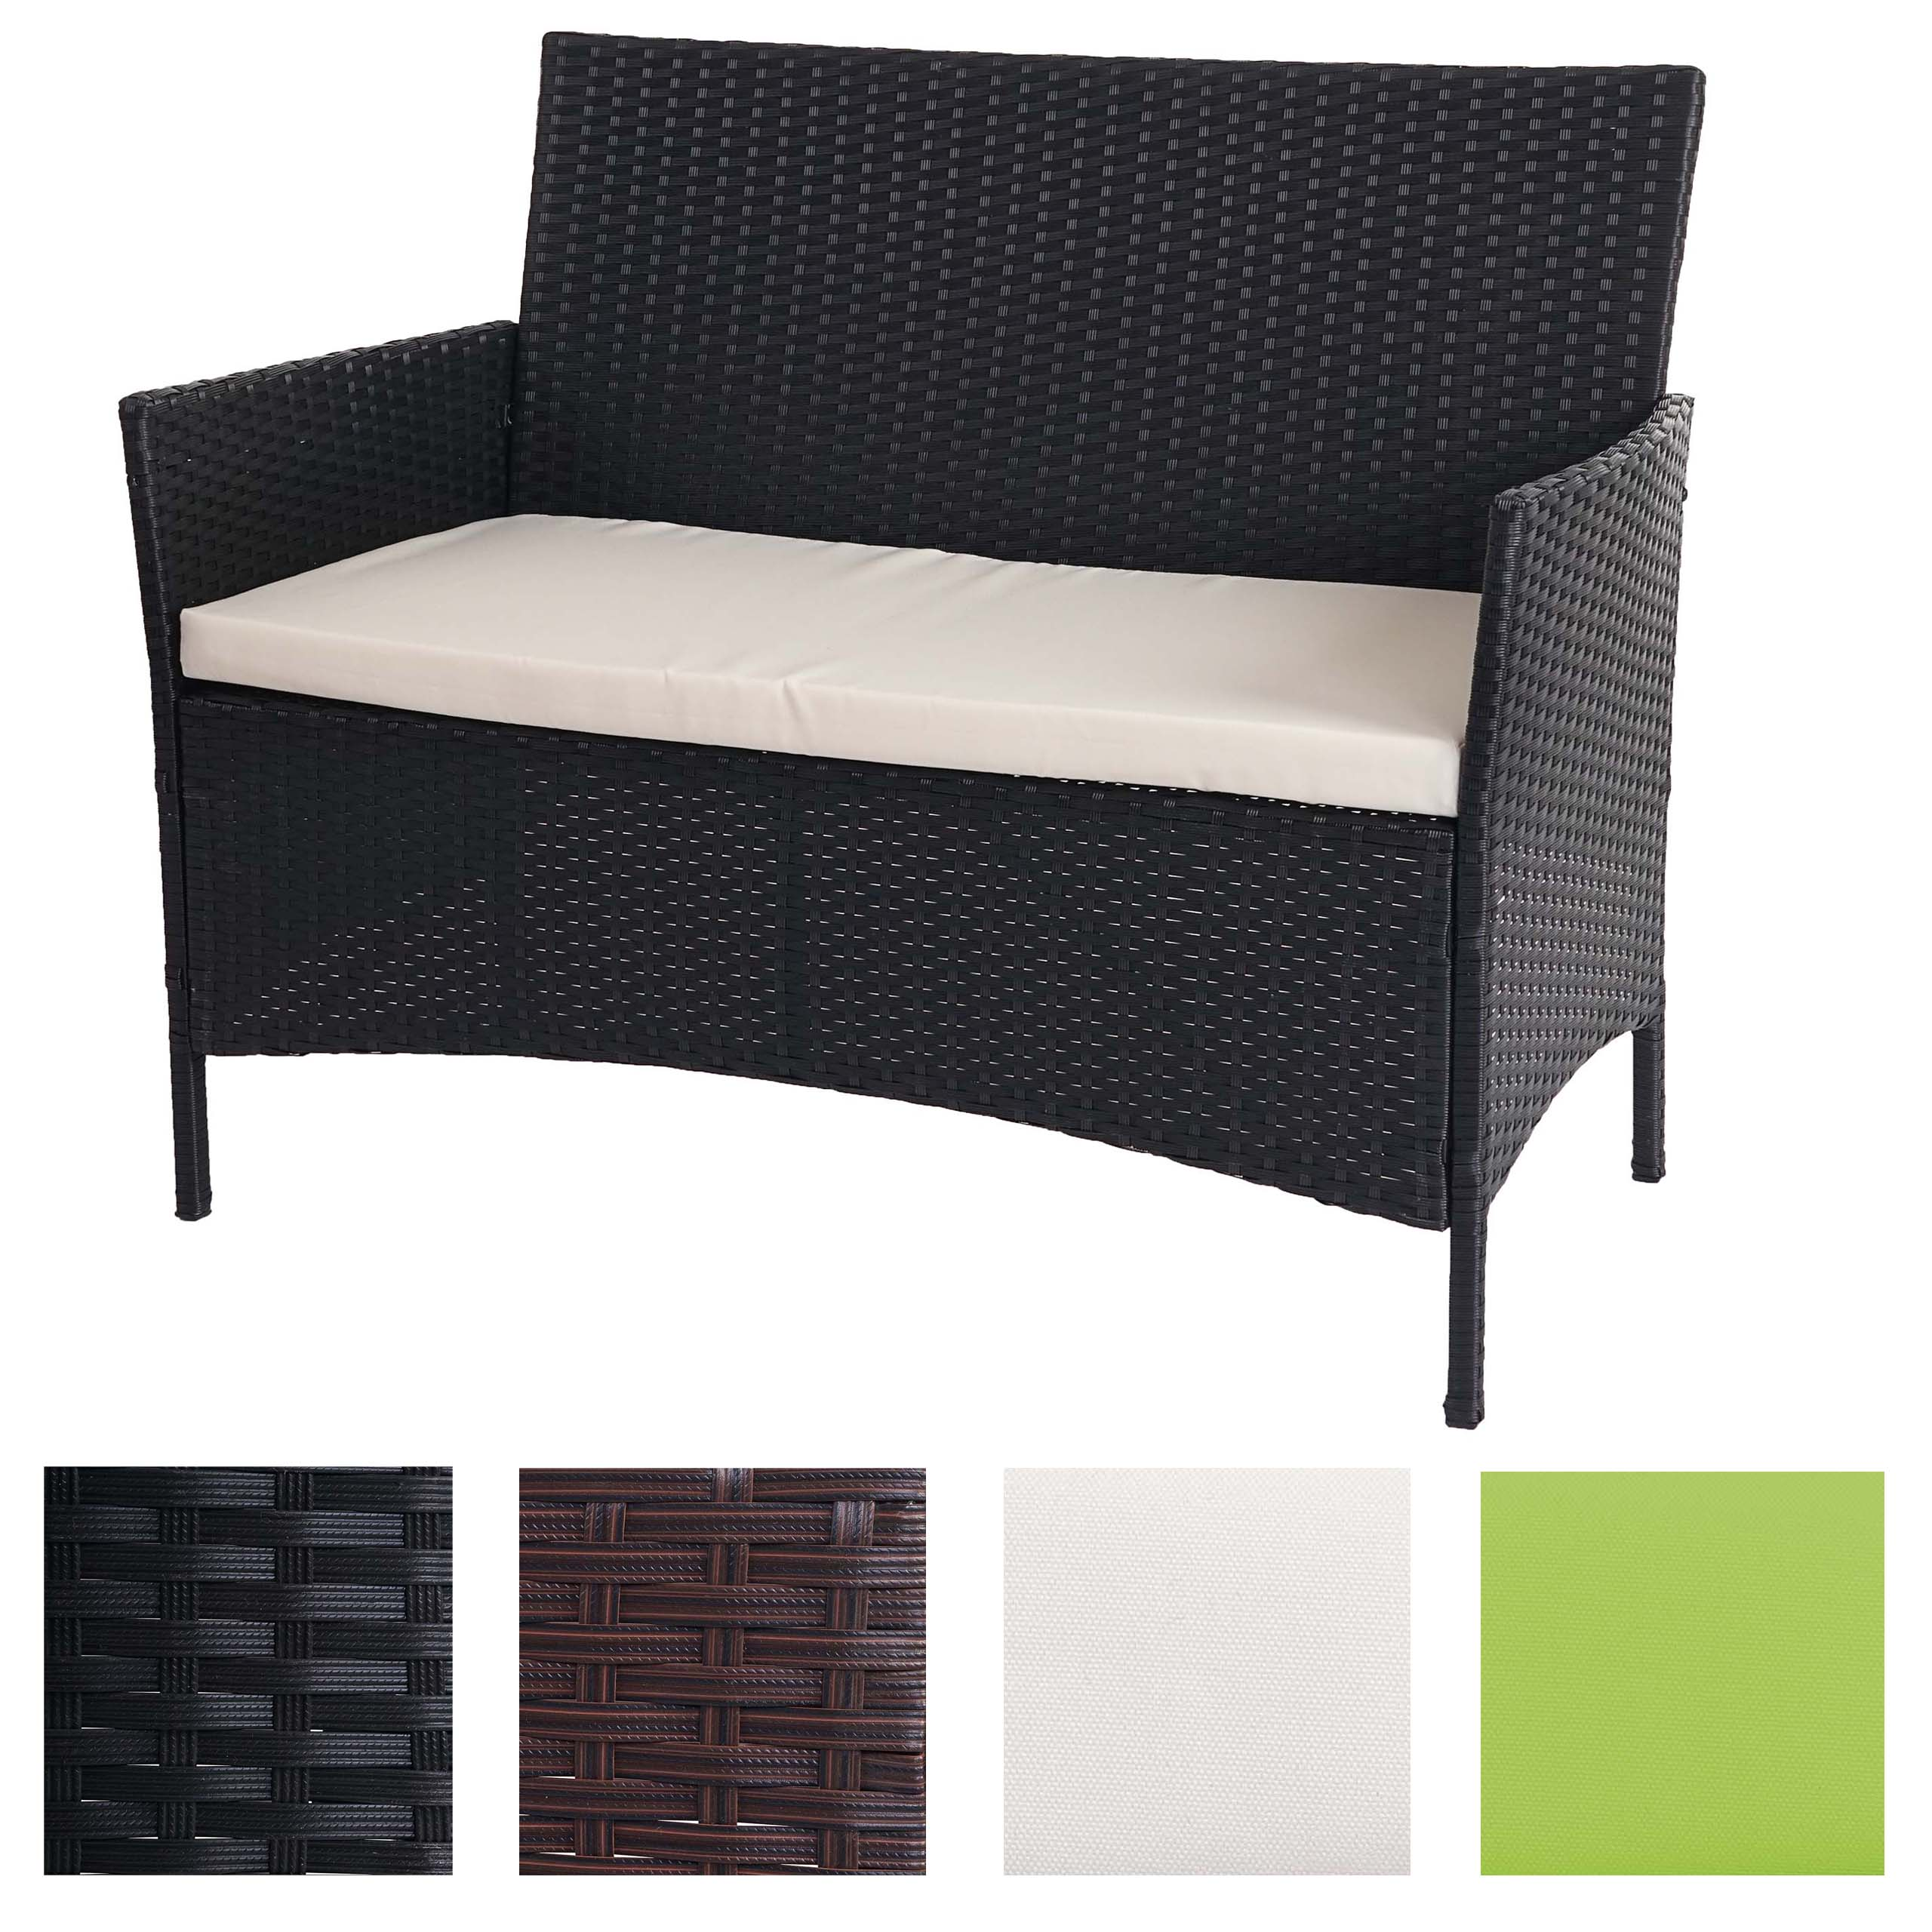 poly rattan gartenbank halden sitzbank bank ebay. Black Bedroom Furniture Sets. Home Design Ideas